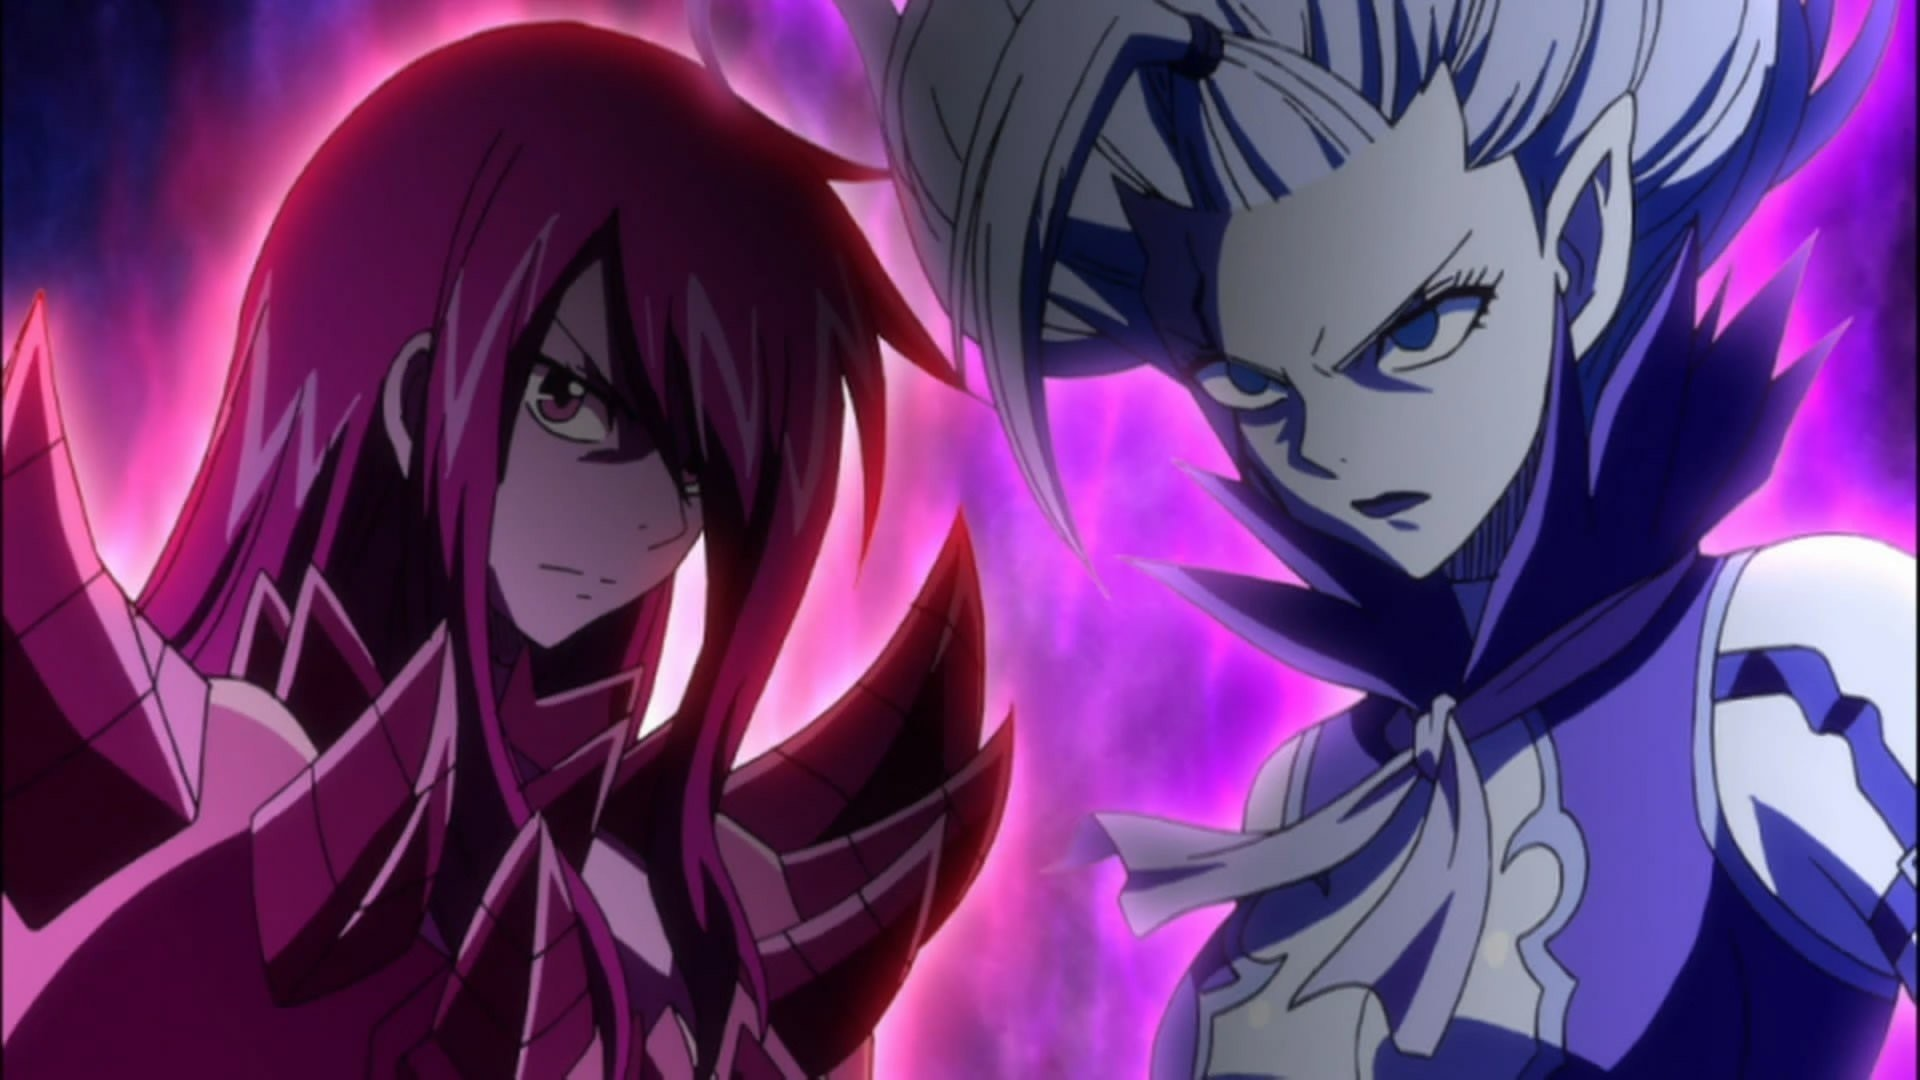 Fairy Tail Scarlet Erza Mirajane Strauss Data Src Fairy Tail Mira And Erza 1920x1080 Download Hd Wallpaper Wallpapertip Superhero toilet fairi tail gundam picture andy warhol art manga yaoi hunter poster x chic poster frame joker anim poster. fairy tail scarlet erza mirajane